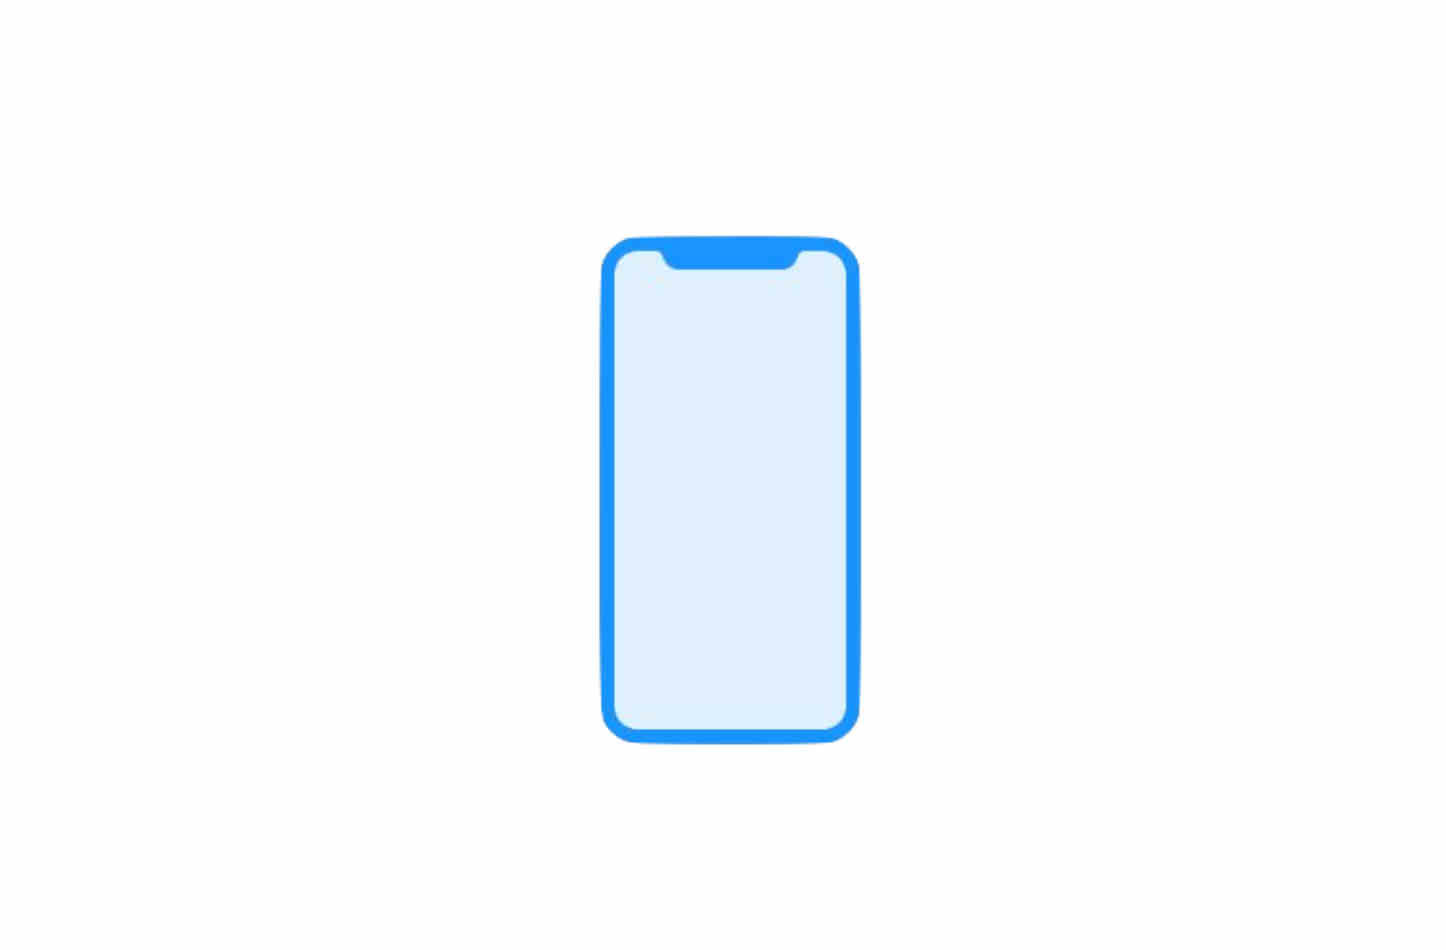 Iphone 8 design found in code